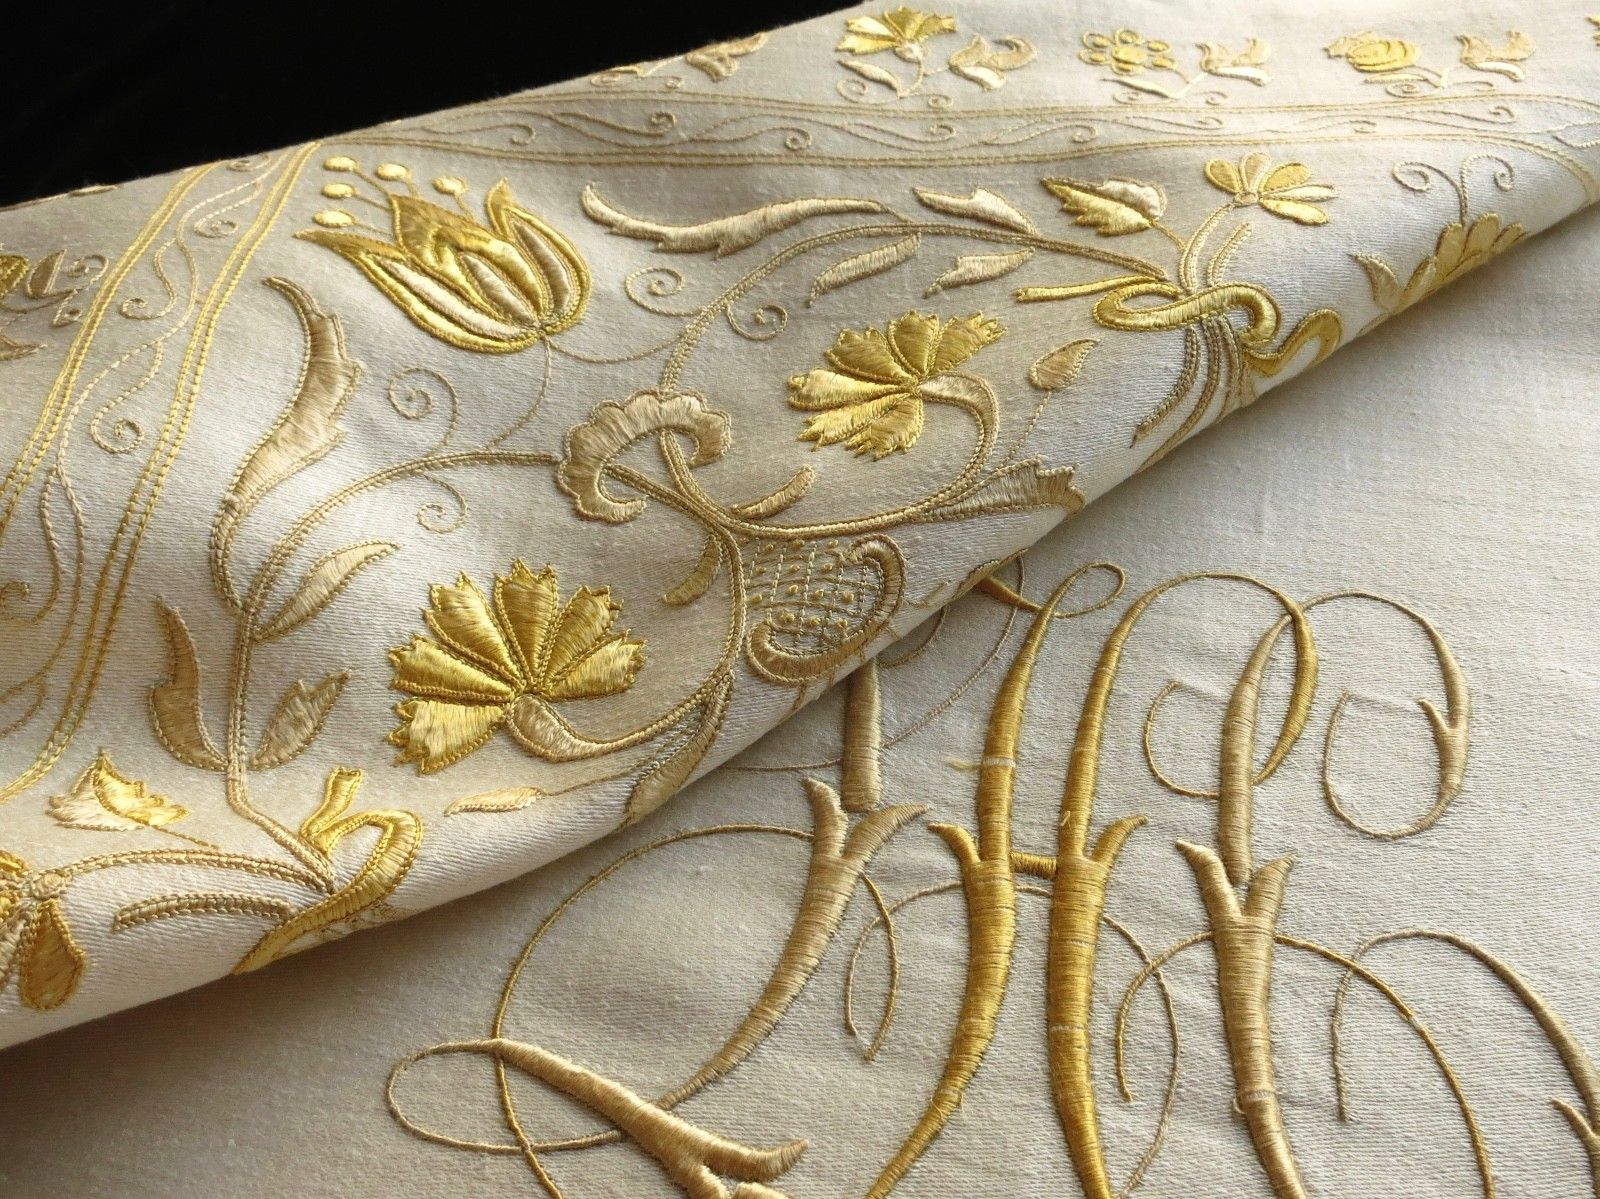 Gold Flowers & Monogram c1900 Antique Embroidery Tablecloth Napkins